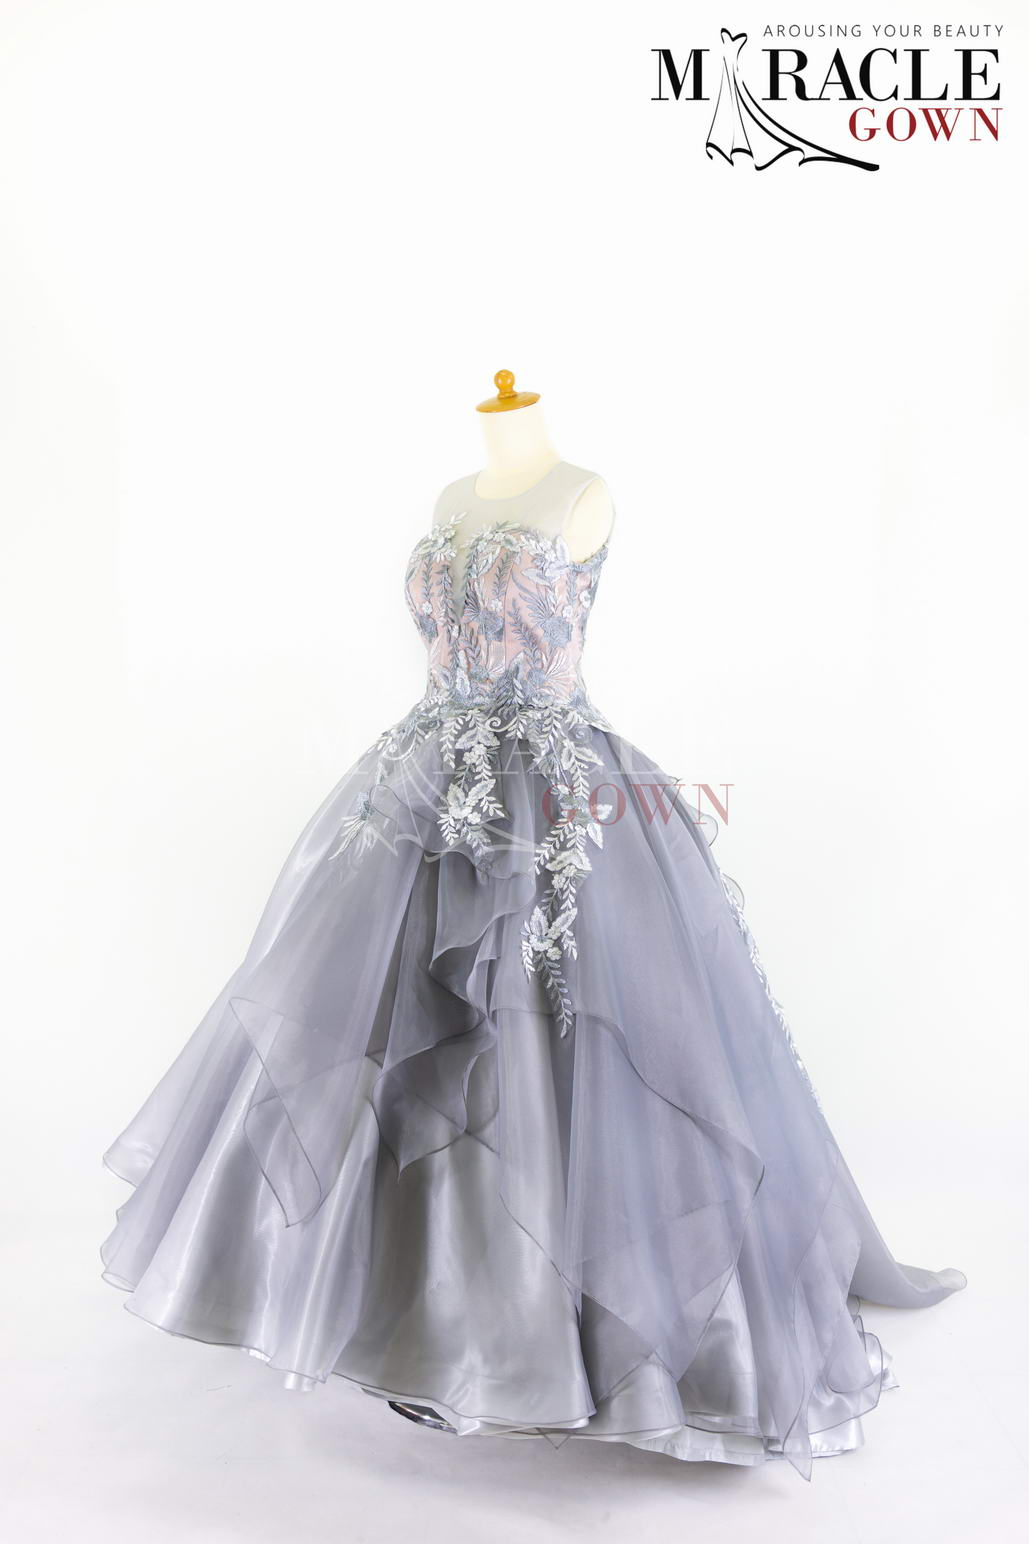 Sewa Gaun Surabaya - Miracle Gown - Silver drop brocade on a sheer layered ball gown